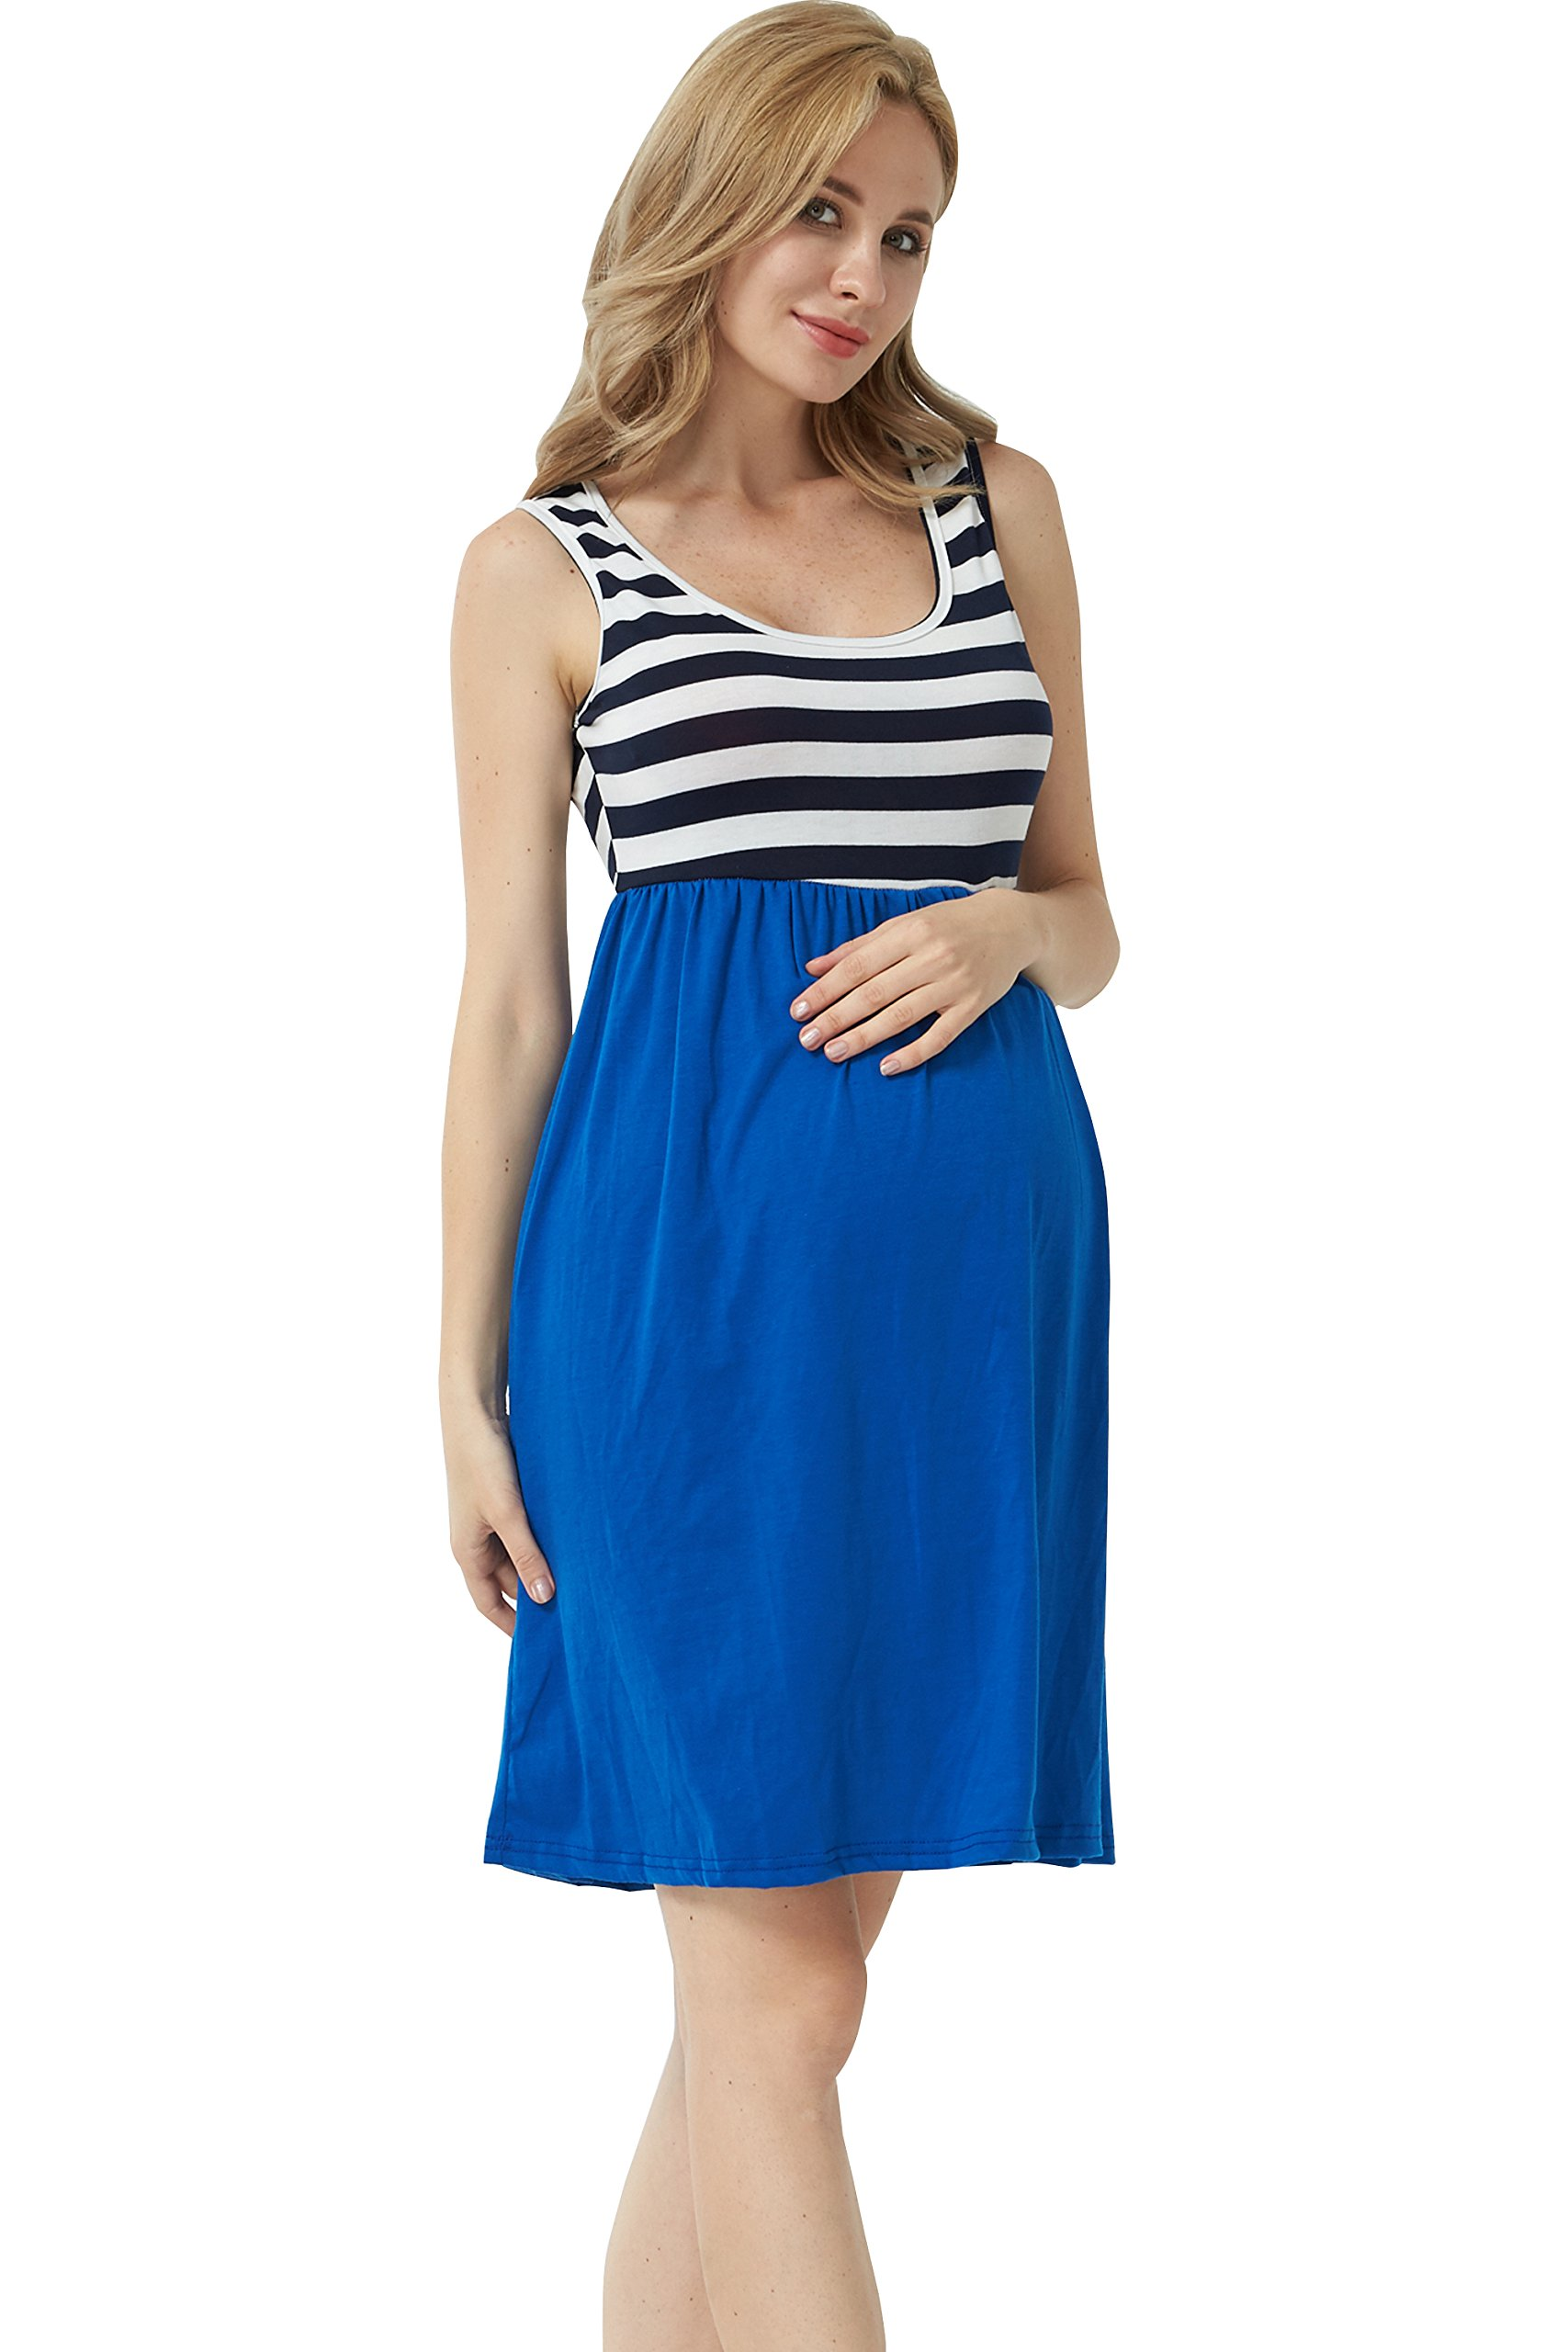 MANNEW Maternity Maxi Dress Pregnancy Tank Tops Knee Length Stitching Color Block Stripe Skirt (Blue, X-Large) by MANNEW (Image #3)